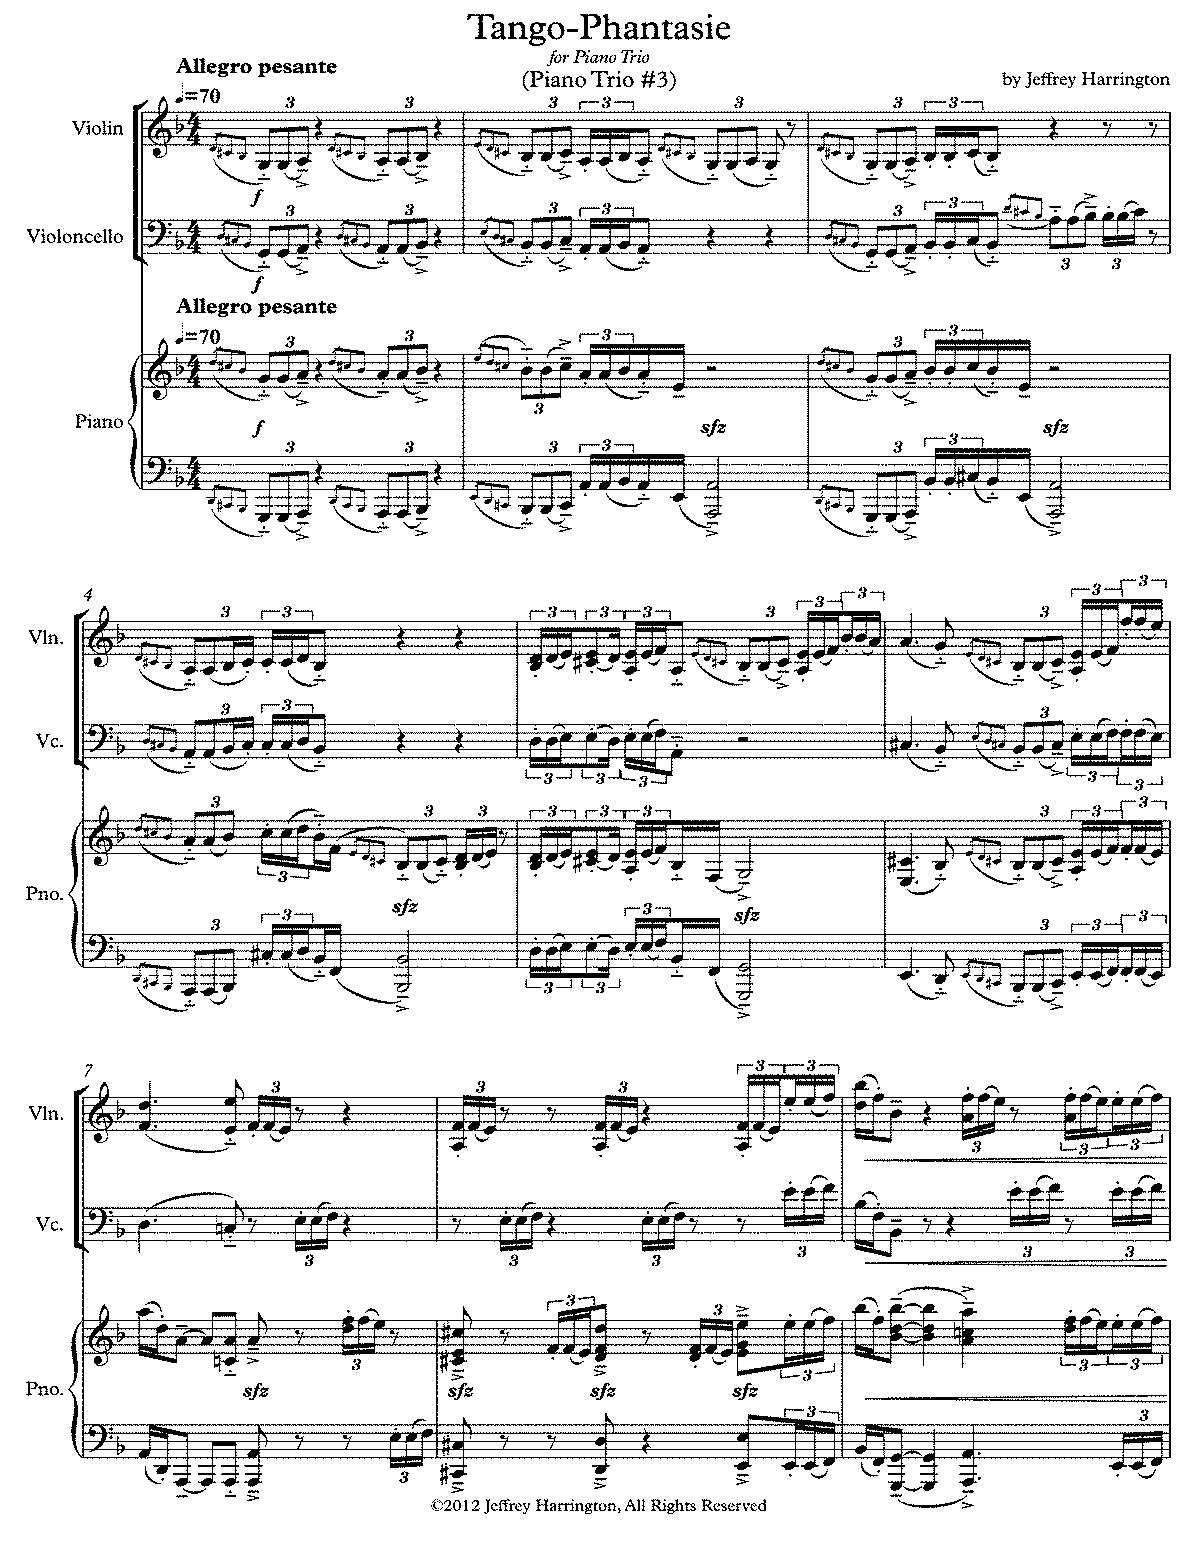 PMLP429269-tango phantasie for piano trio score.pdf